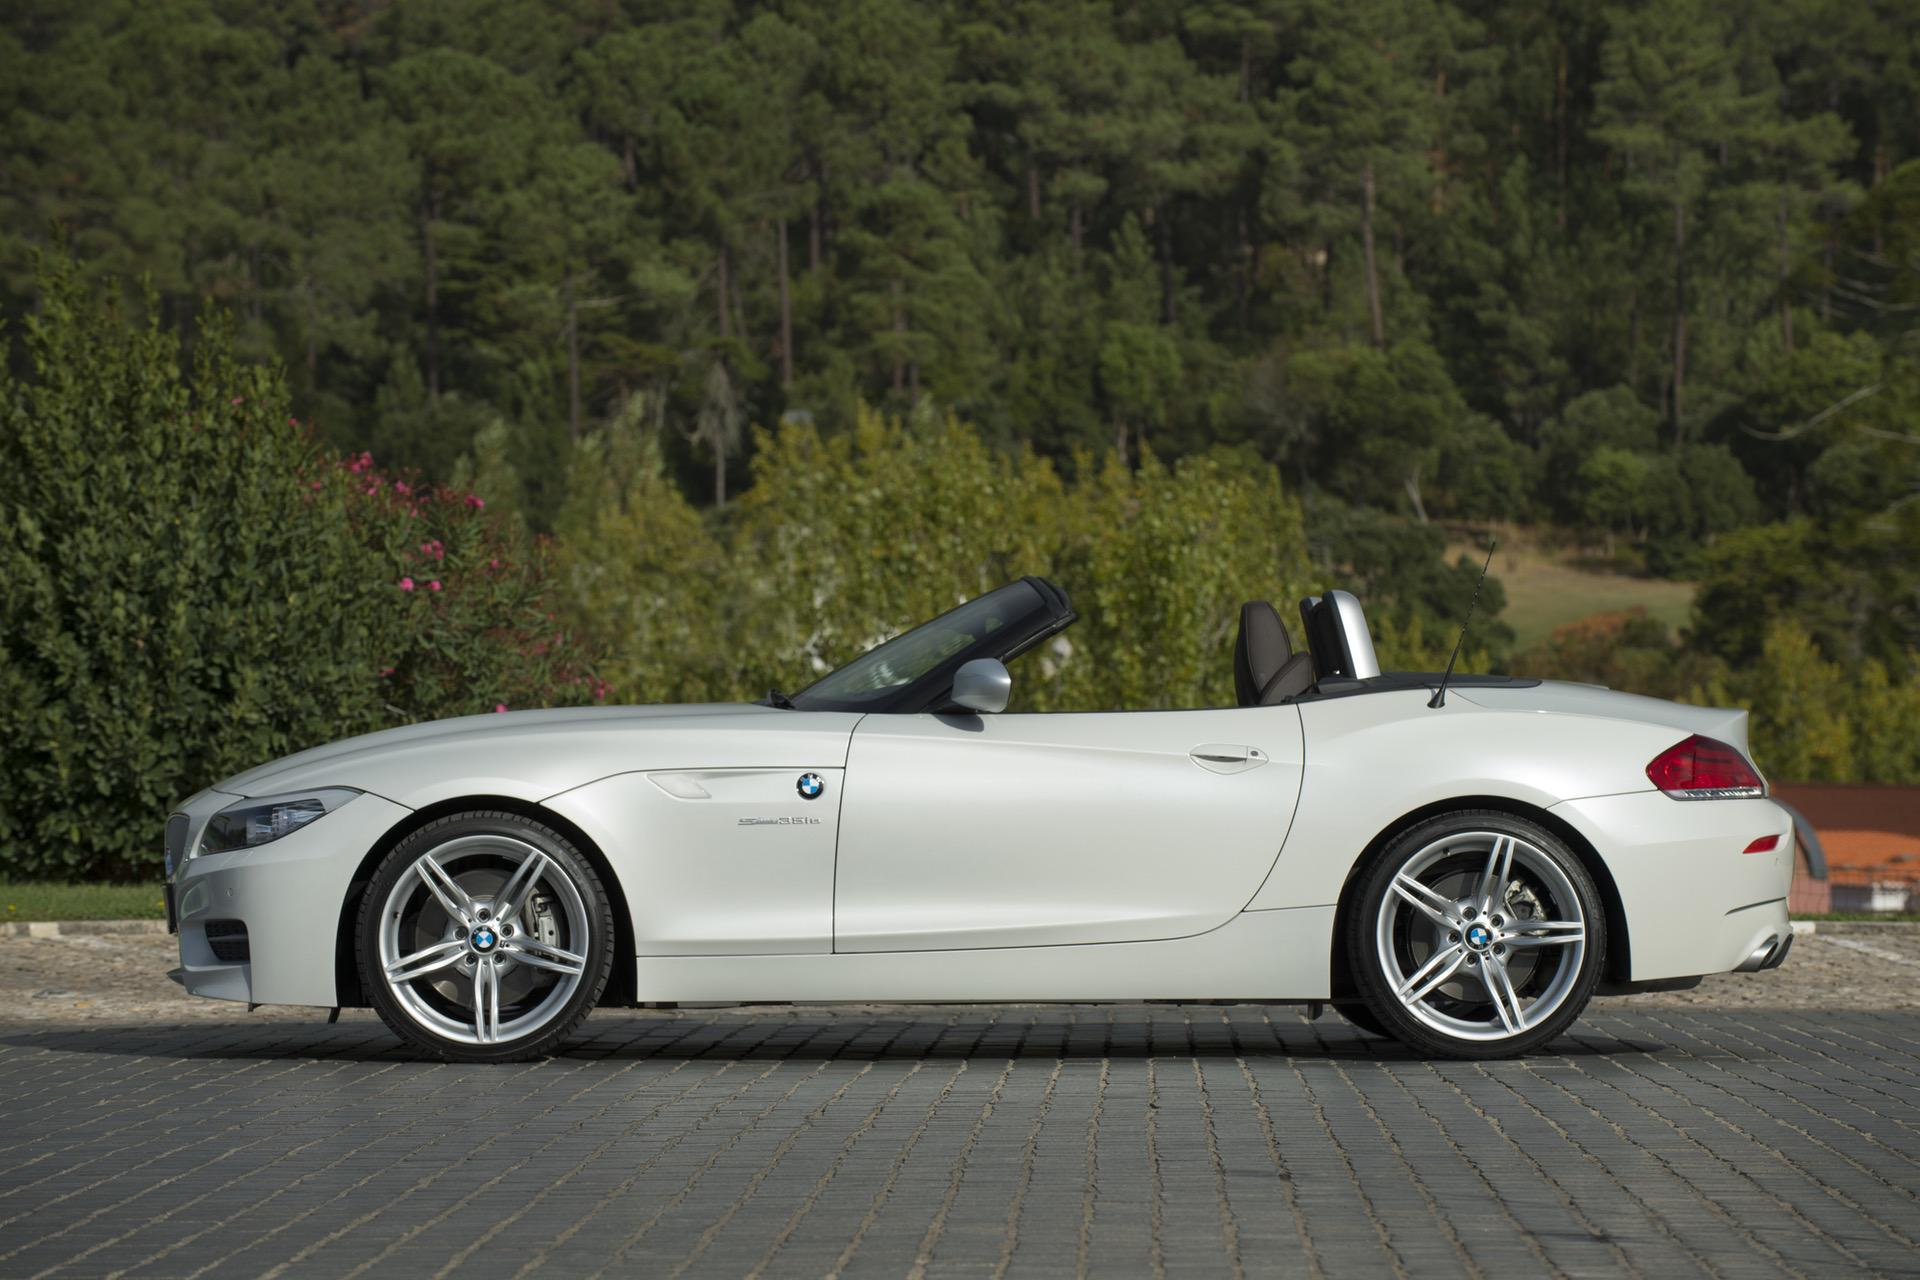 The Bmw E89 Z4 Was Not Only Fun To Drive But Good Looking